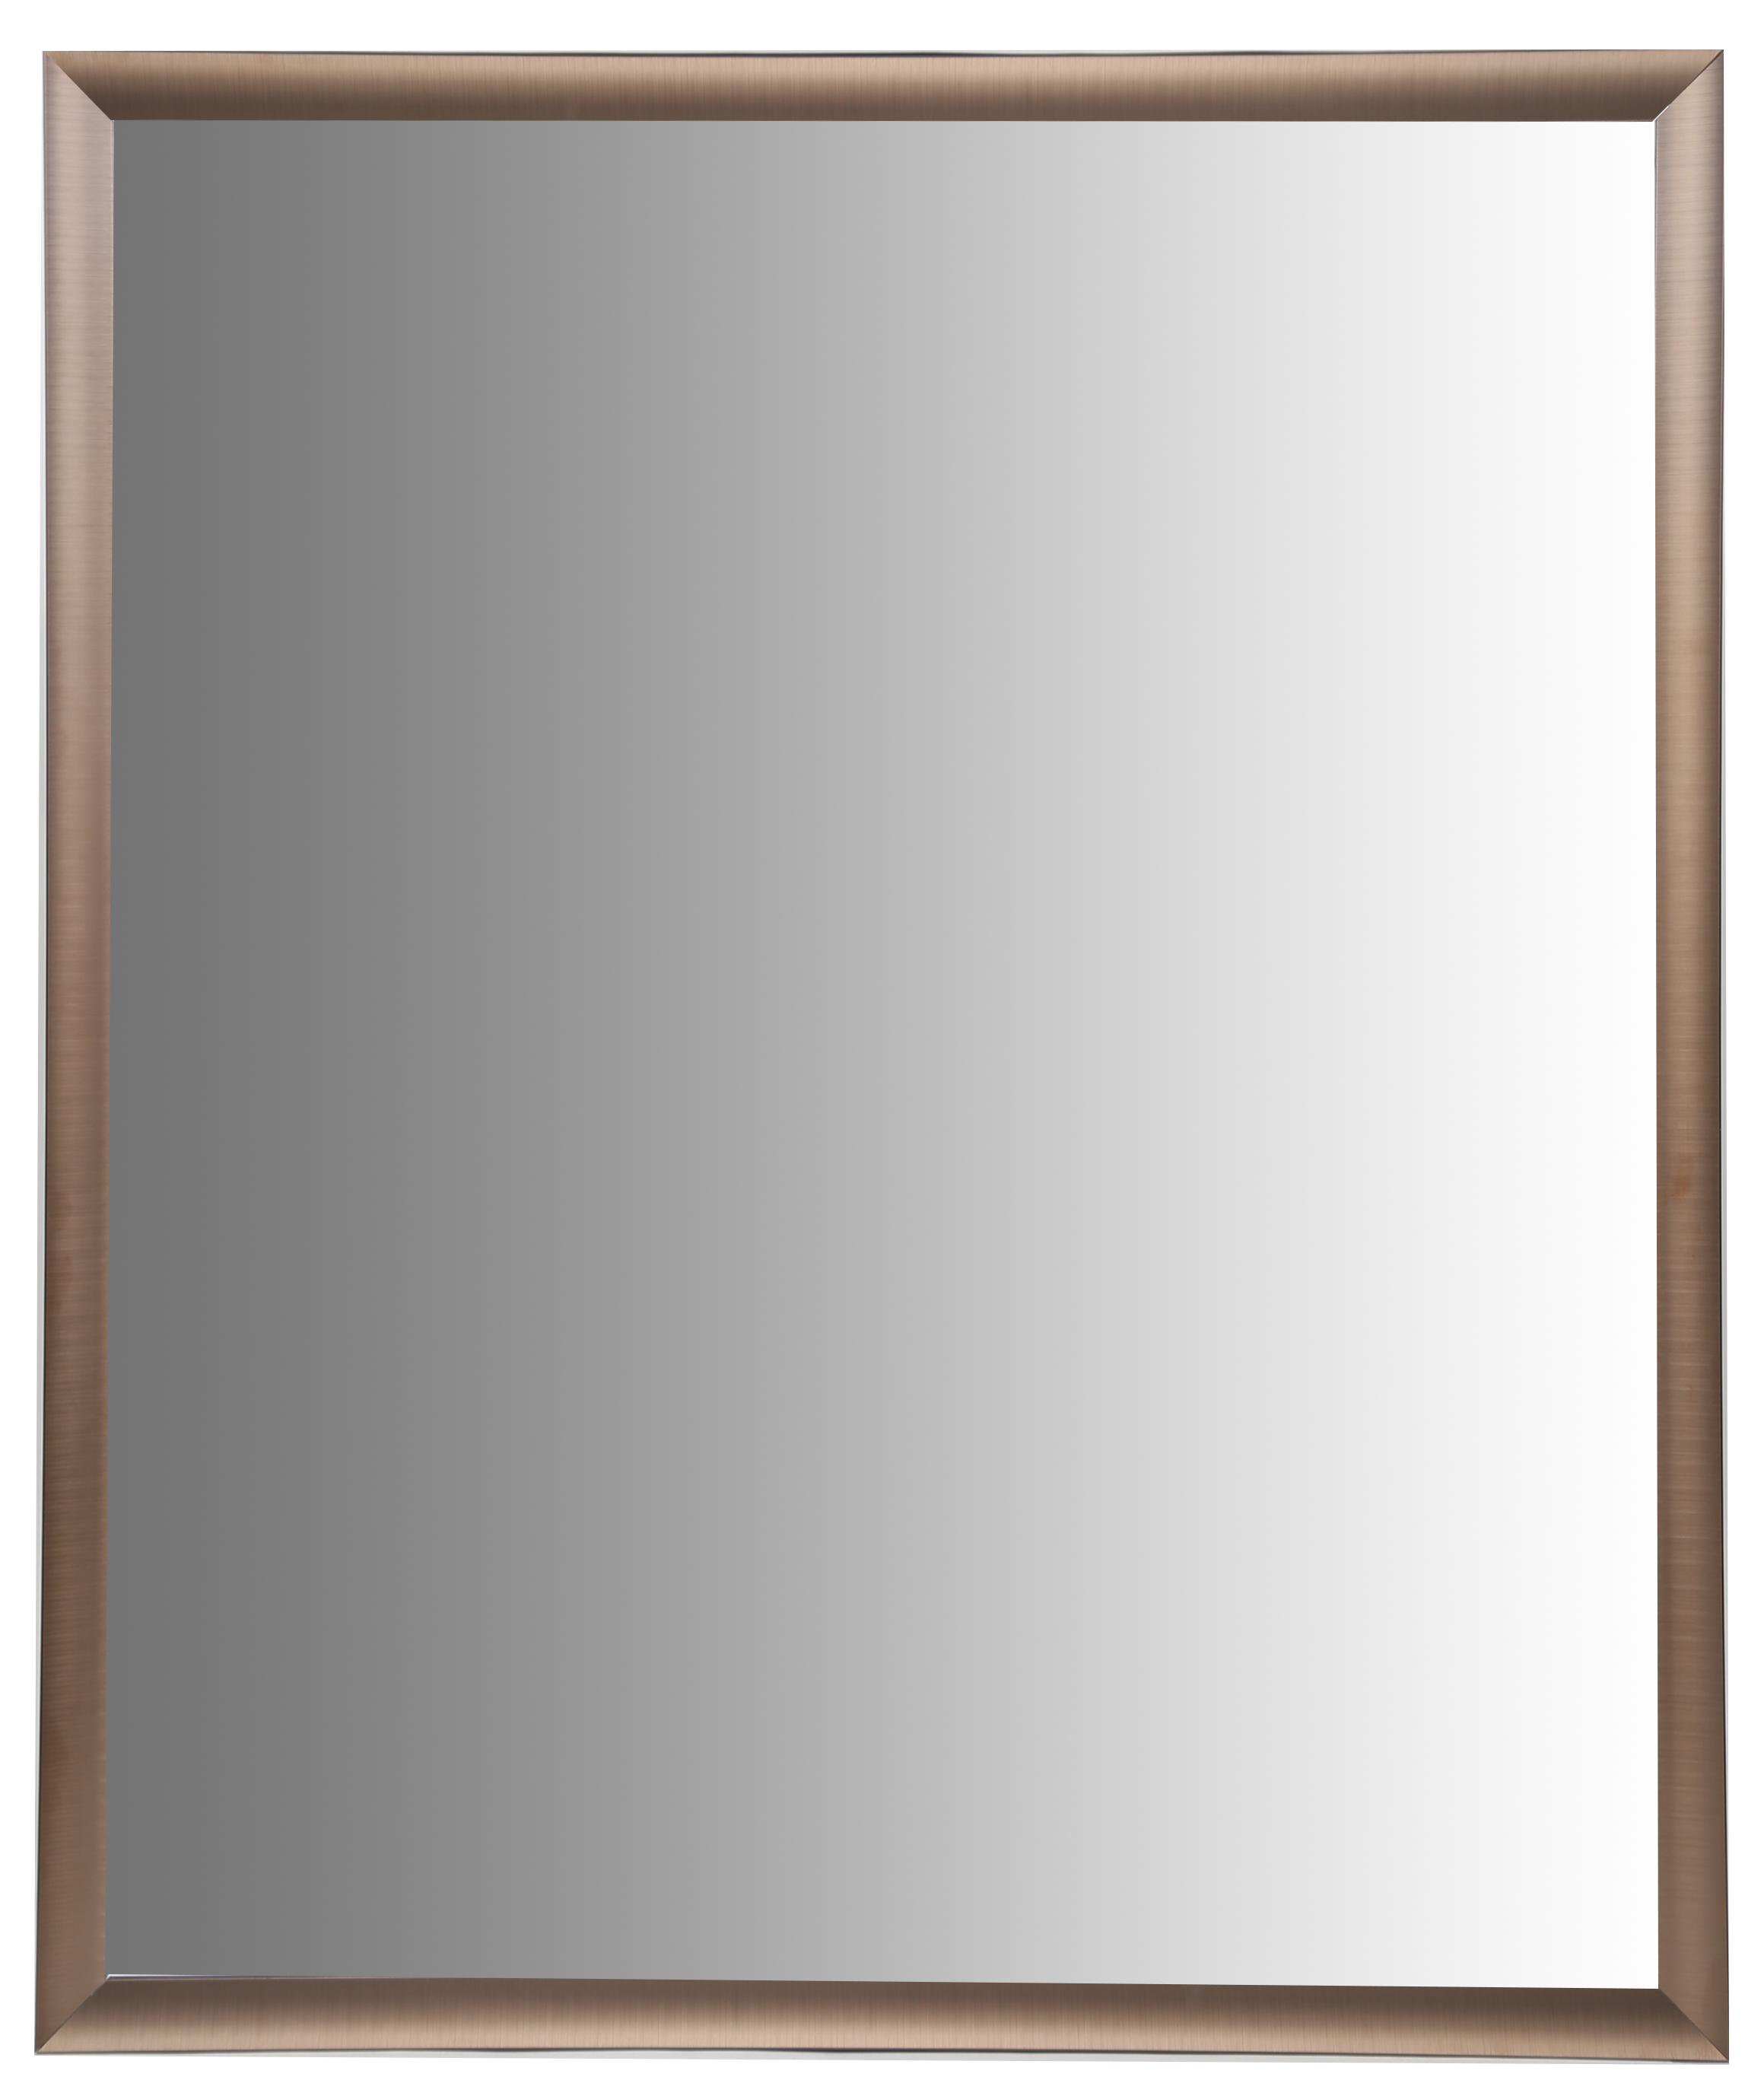 Click here to buy 30x36 Brushed Bronze Aluminum Vanity Mirror, with 1 1 4 Wide Moulding by Pinnacle.